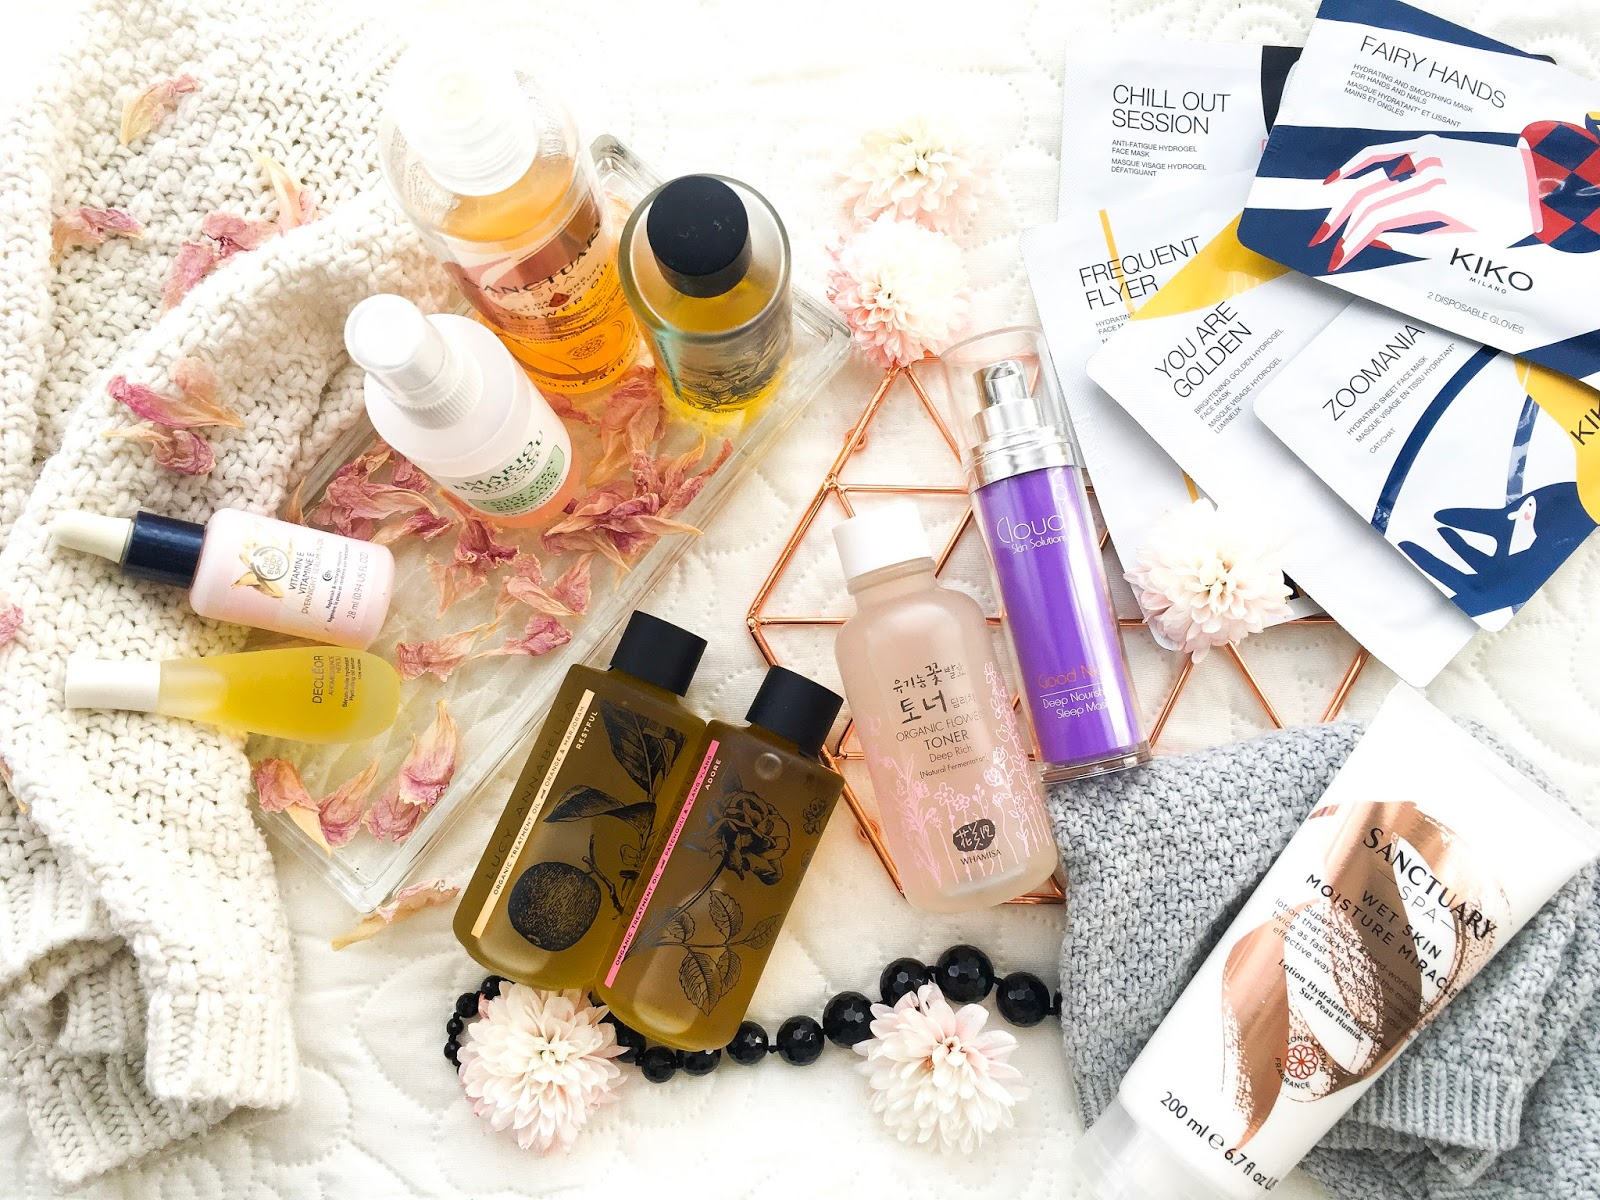 winter beauty preps, winter beauty products, kiko hydrogel masks, the body shop vitamin e range, decleor aromessence, lucy annabella treatment oils